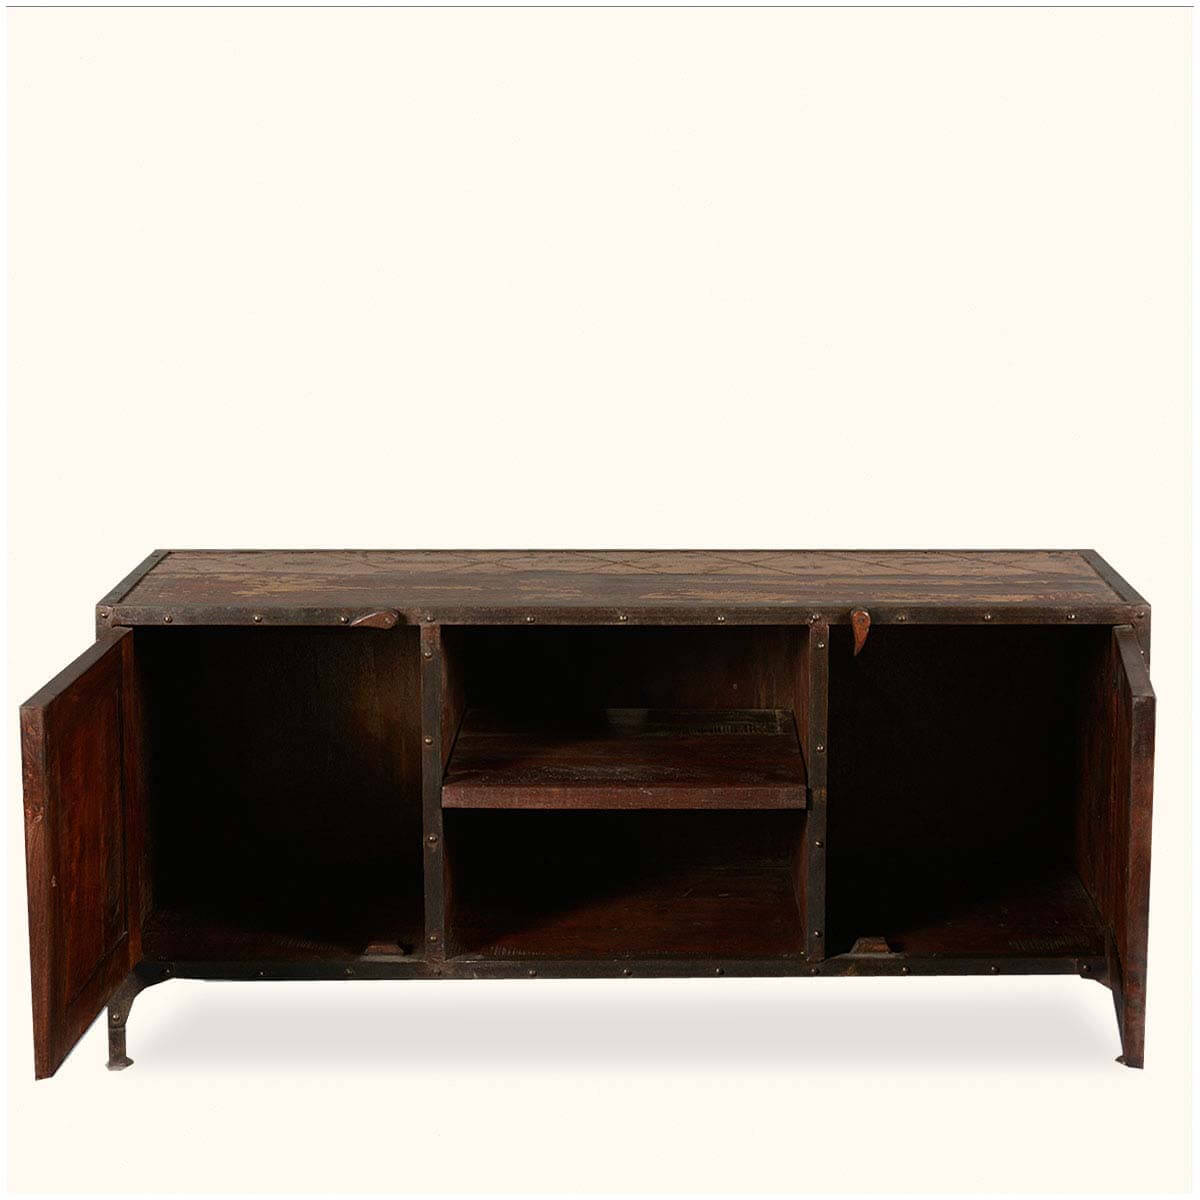 Rustic Industrial Reclaimed Wood Iron Tv Stand Media Console